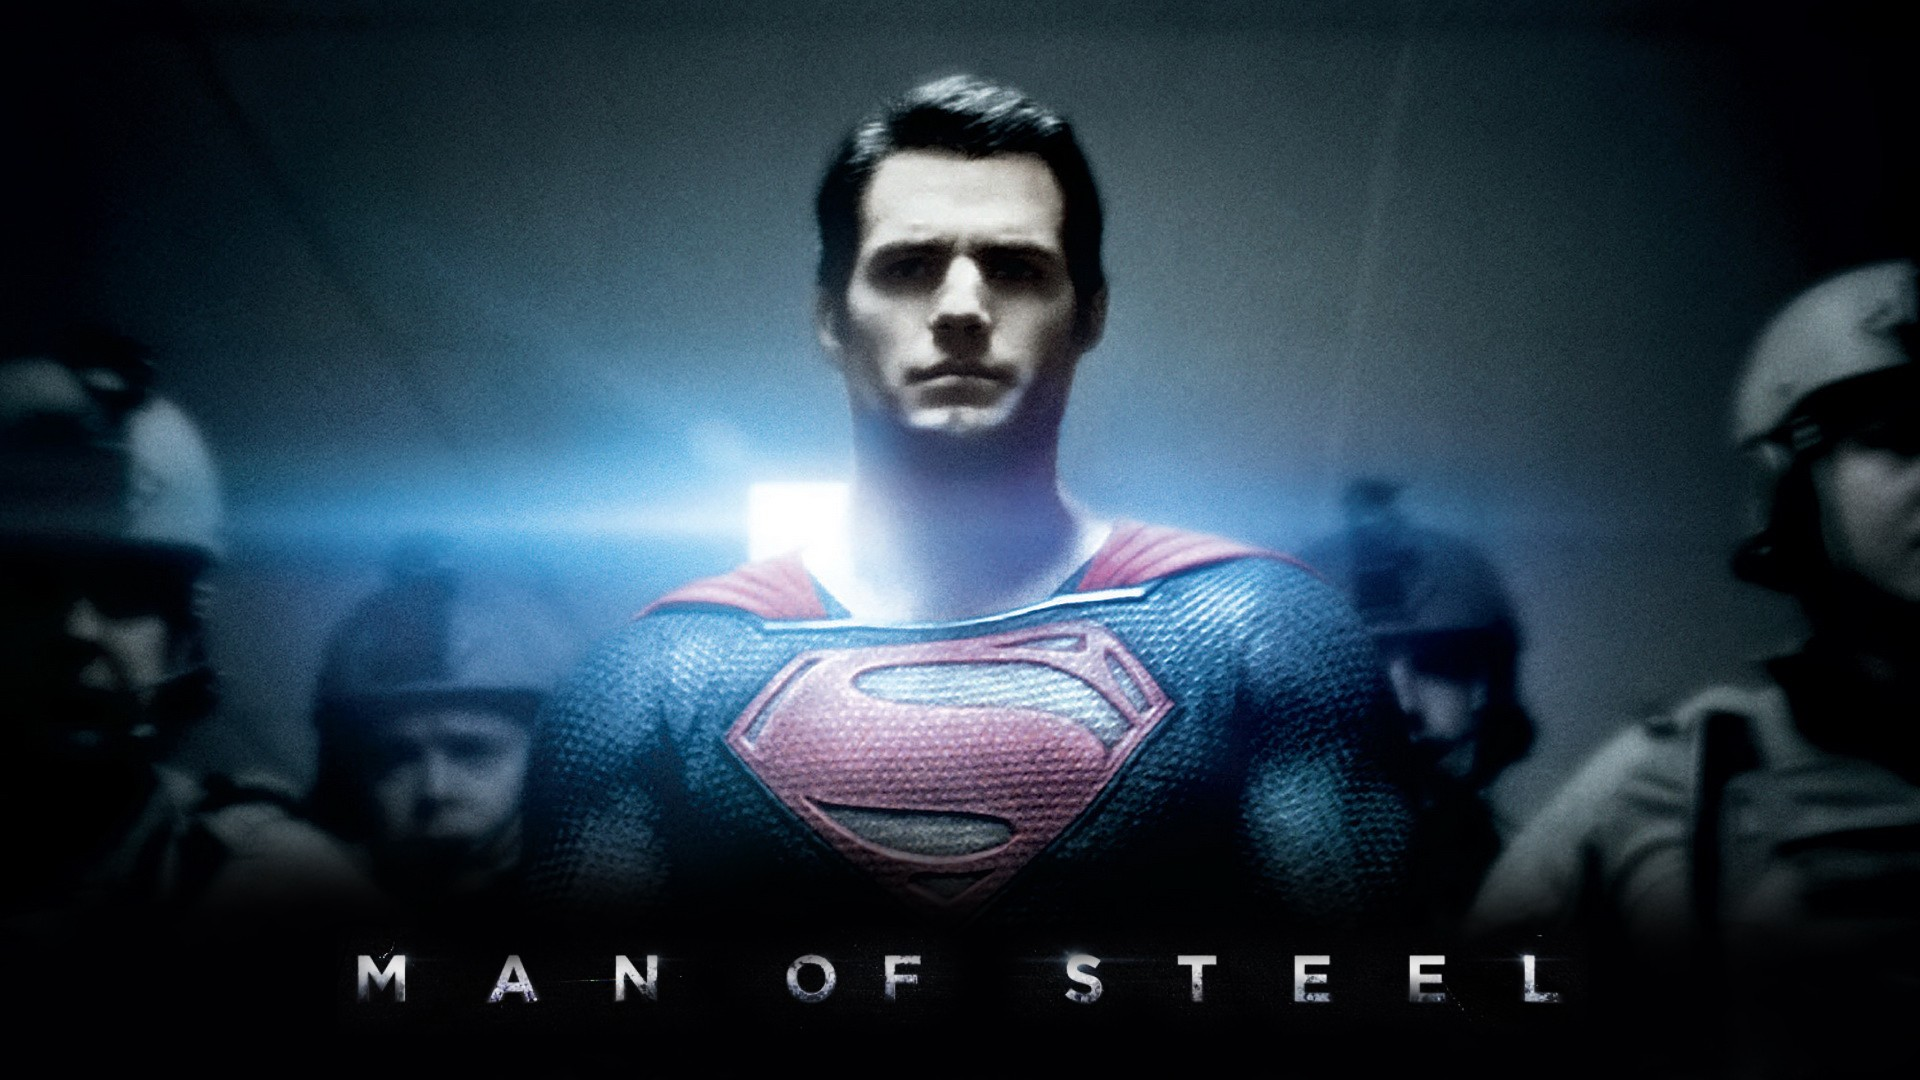 Henry Cavill Man of Steel 2013 Exclusive HD Wallpapers 3879 1920x1080